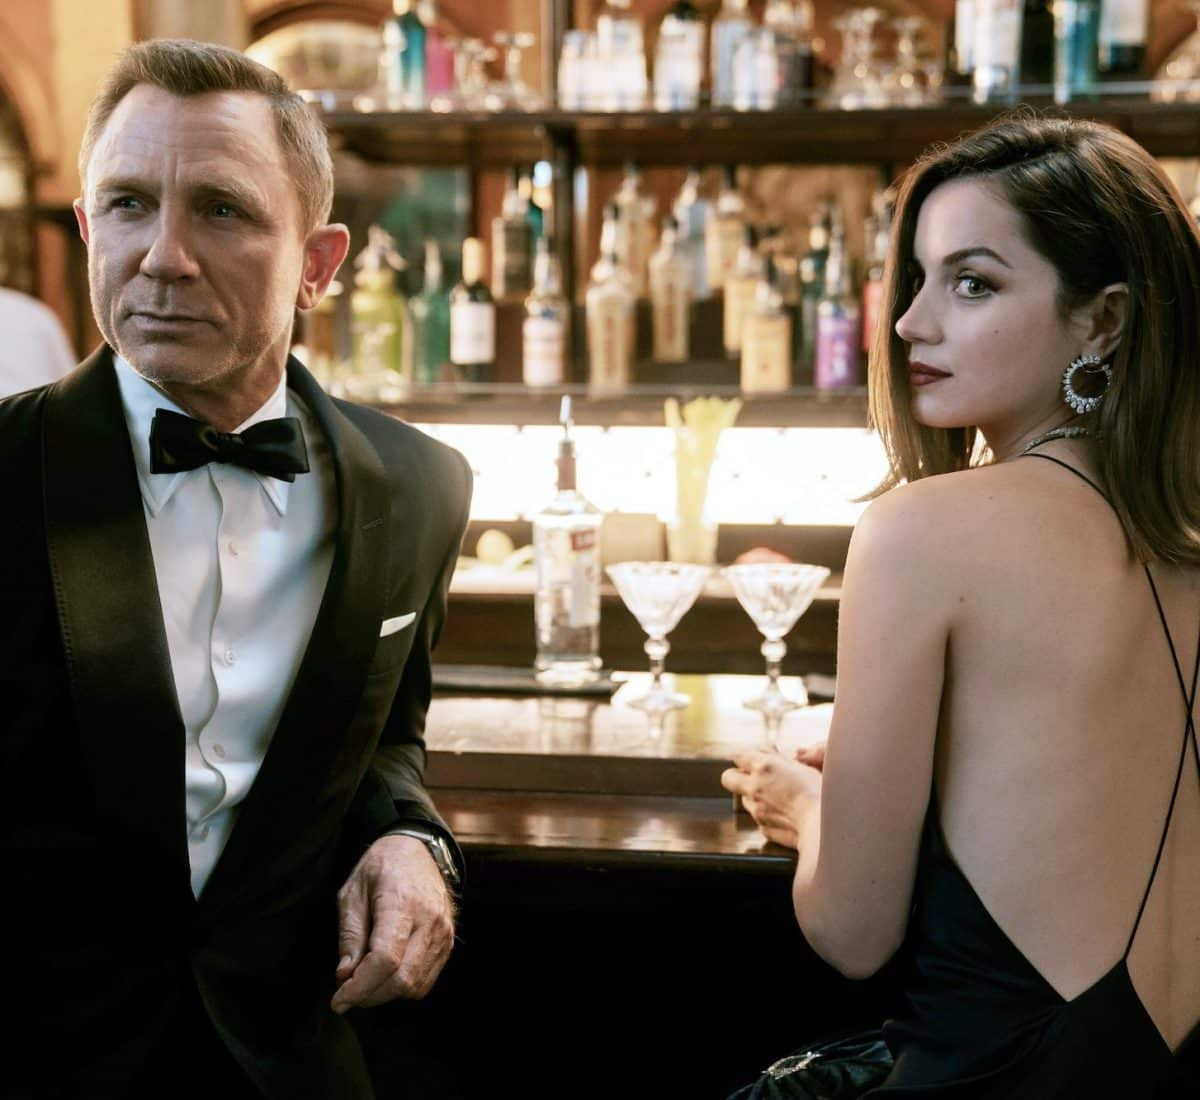 In this fall's No Time to Die, Daniel Craig's Bond pairs his tuxedo with an OMEGA SEAMASTER and a martini in a scene with Ana de Armas.